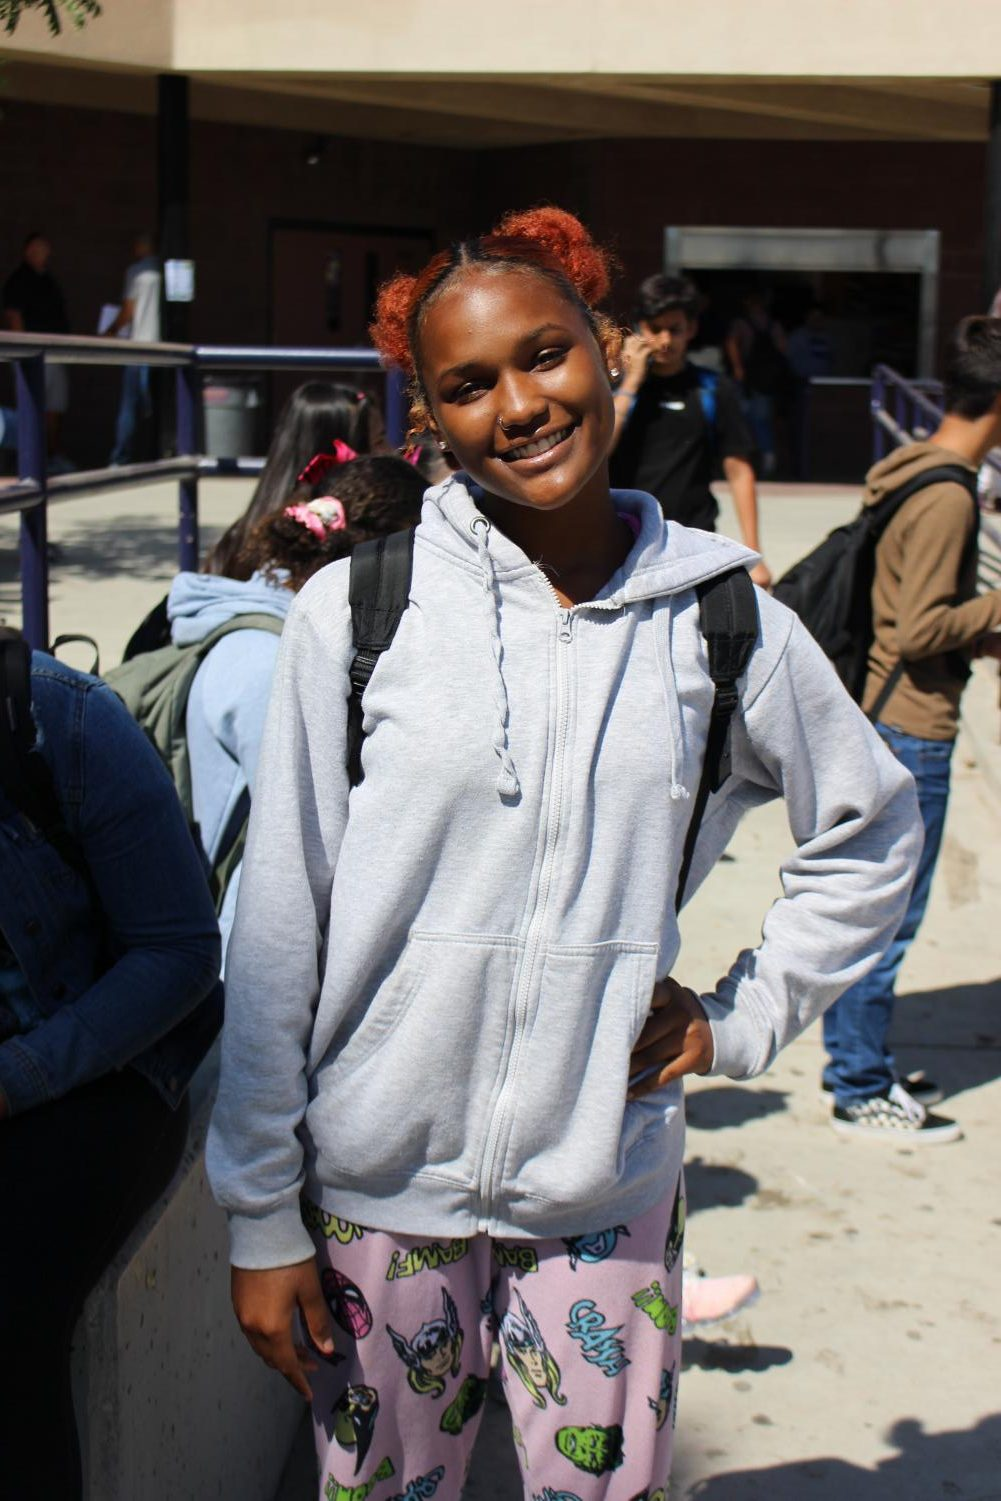 A student smiles as she wears a cute outfit for Dress Like A Little Kid Day